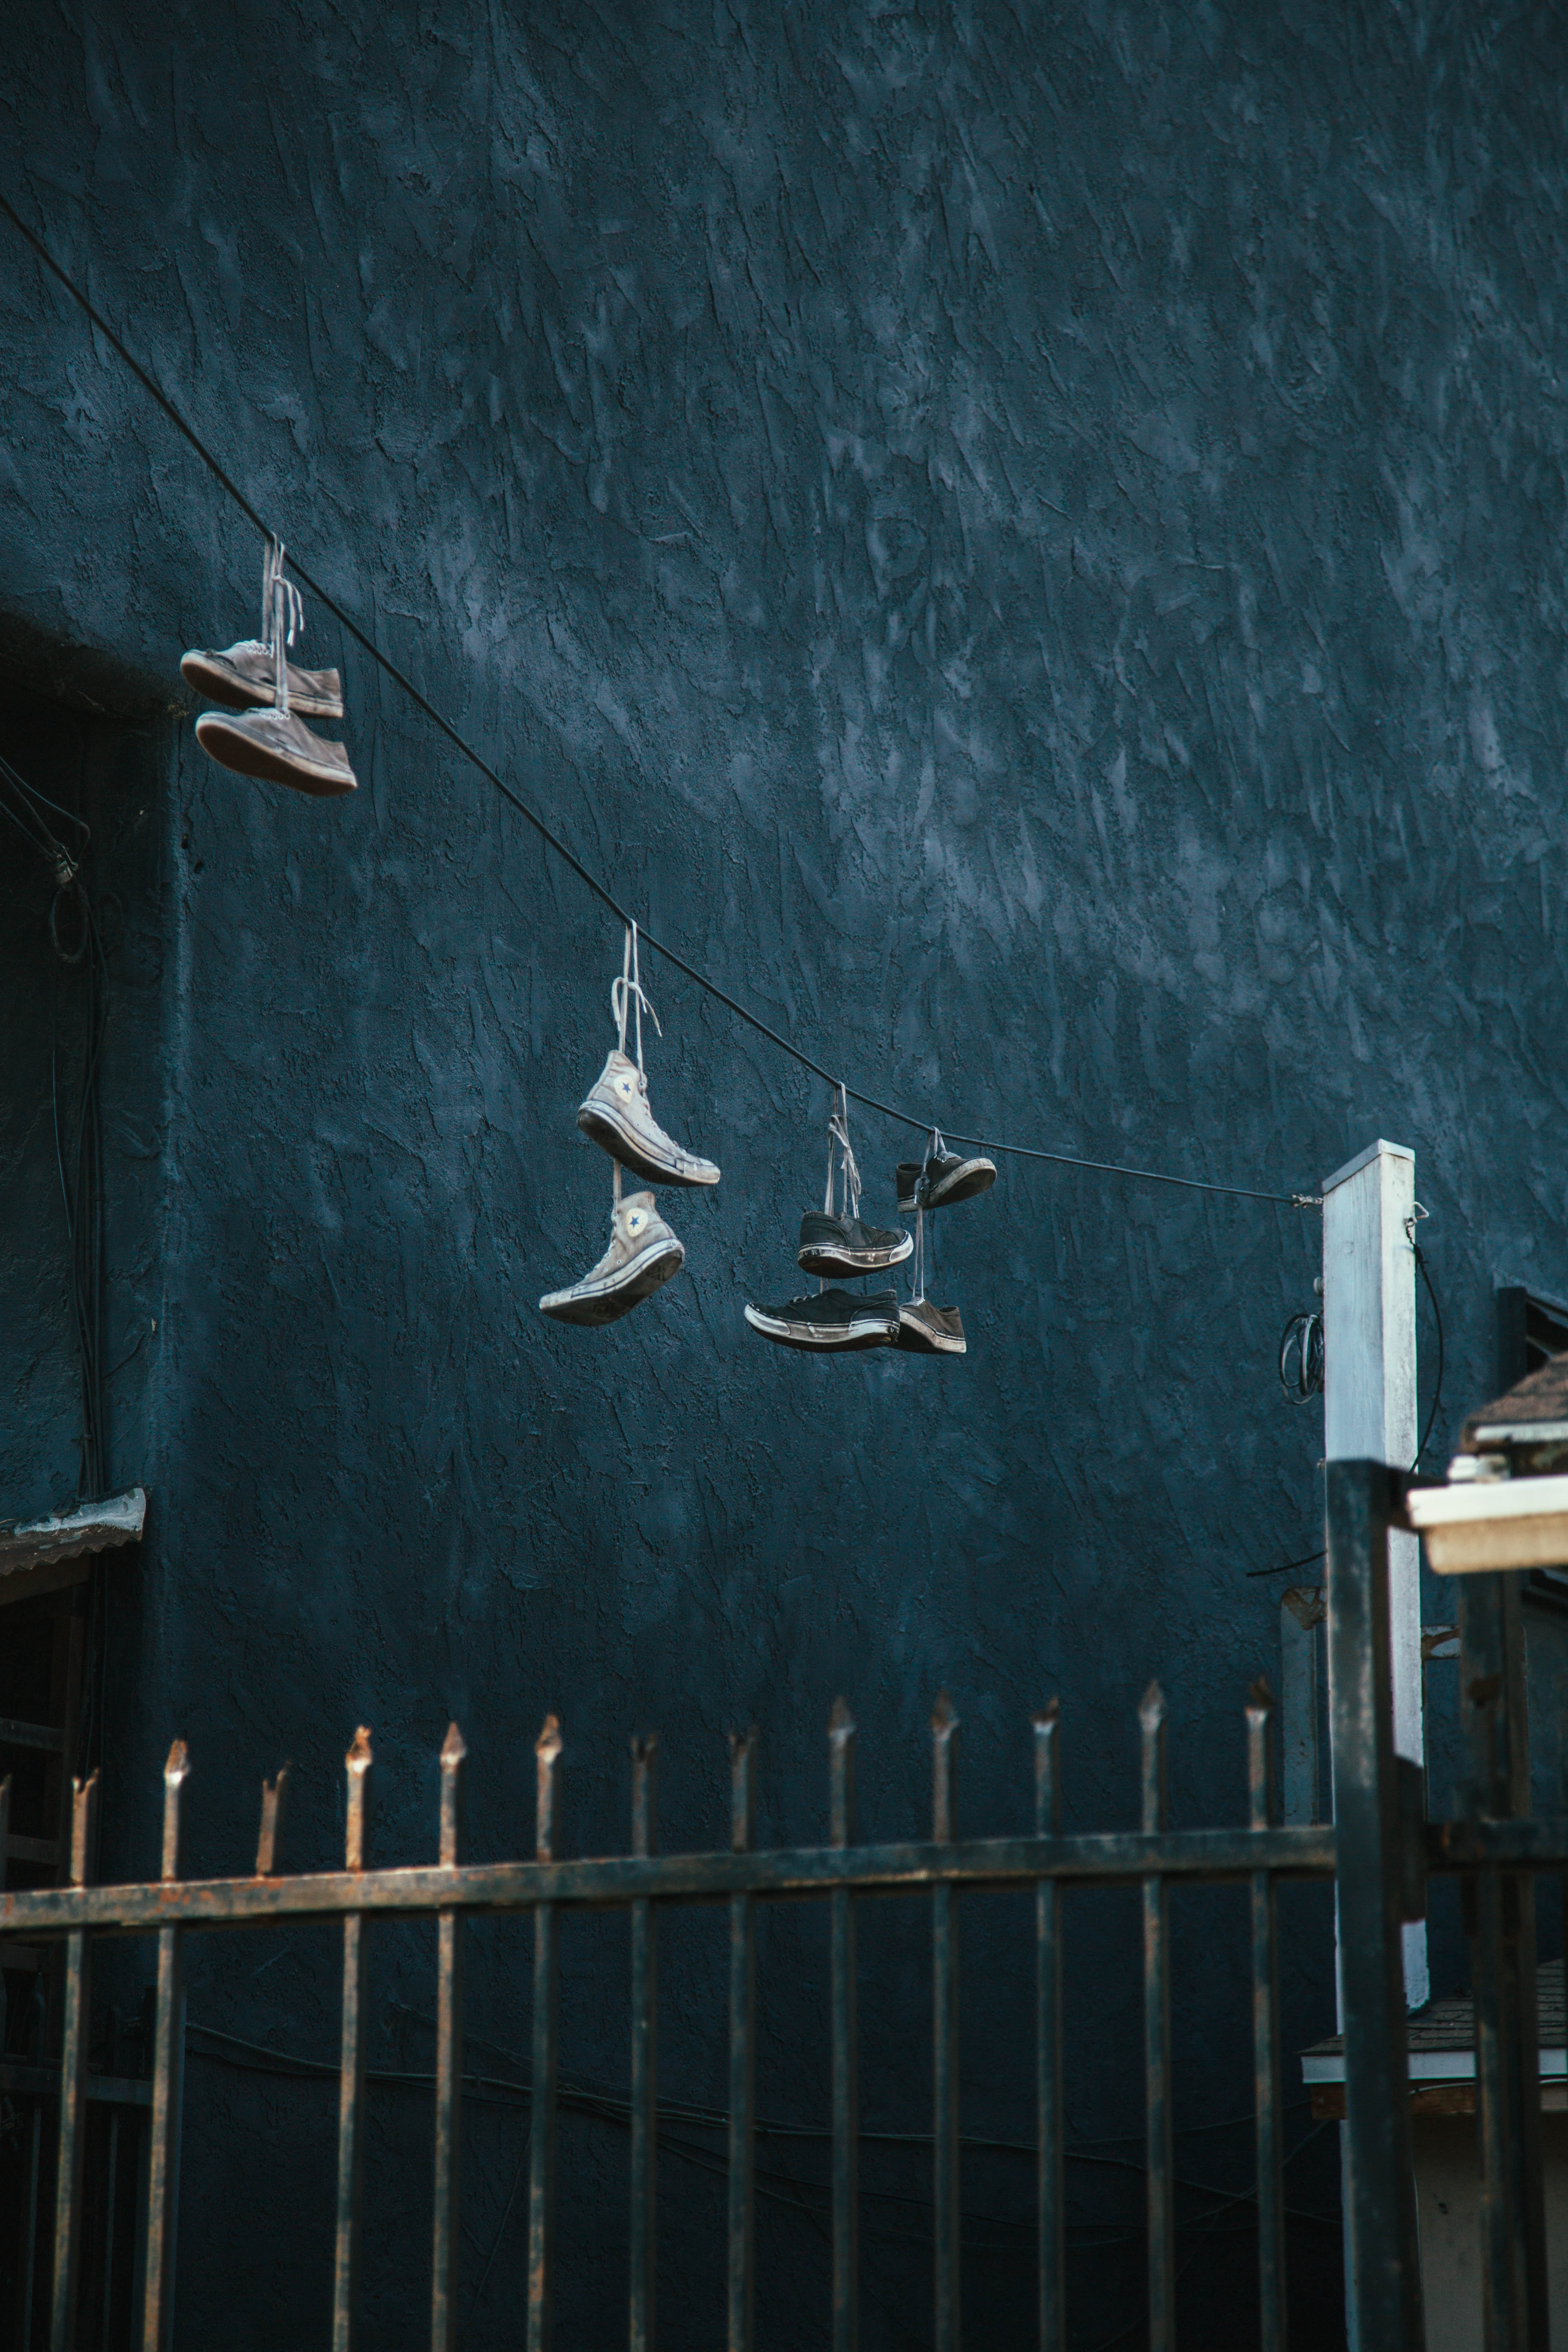 shoes hanged on black wire near metal gate